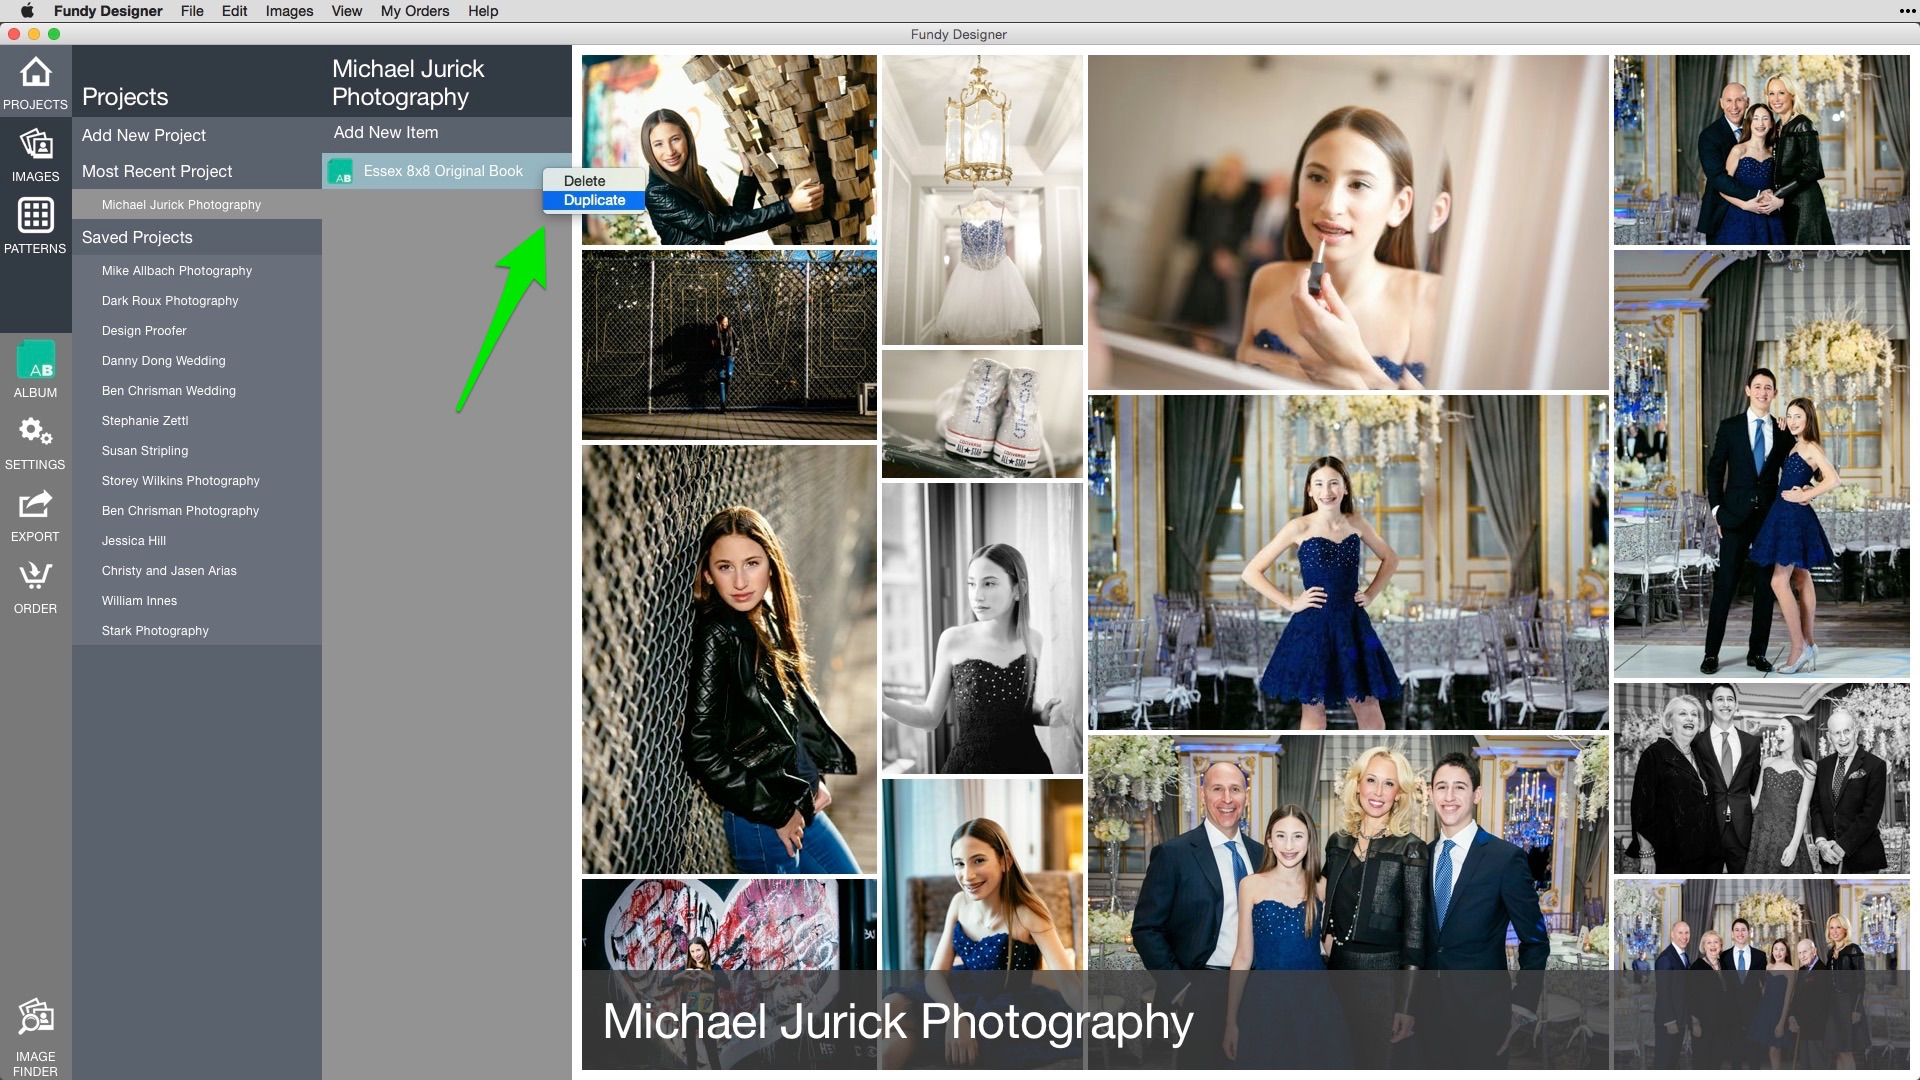 how to change order of photos in iphoto album